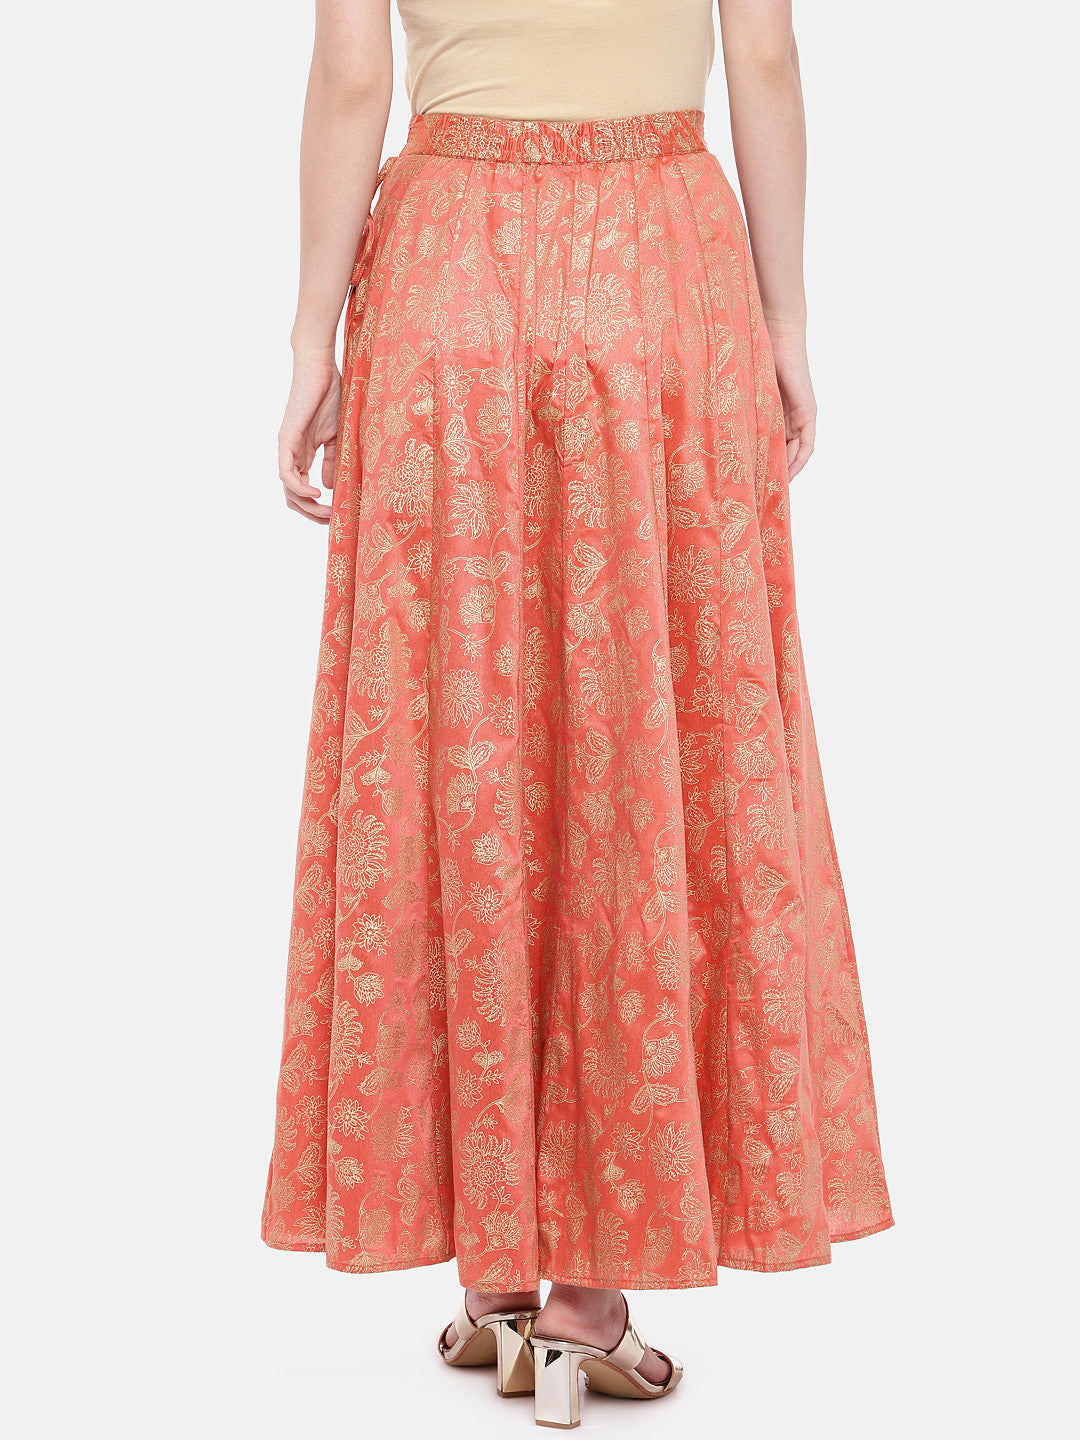 Orange Printed Flared Skirt-3